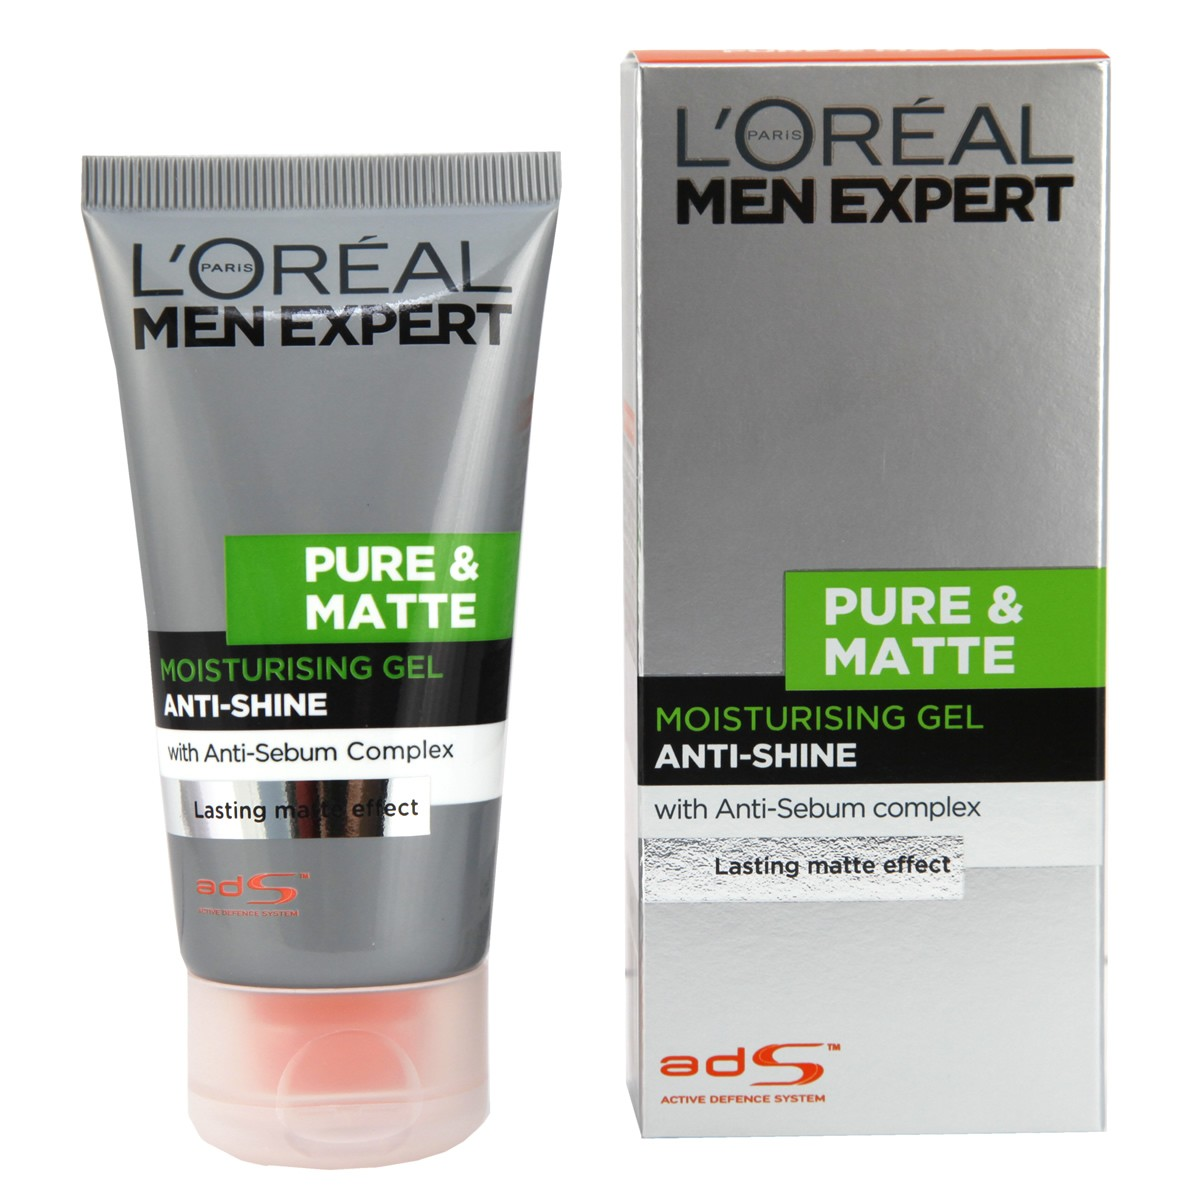 L'Oreal Paris Men Expert Pure &  Matte Moisturising Gel